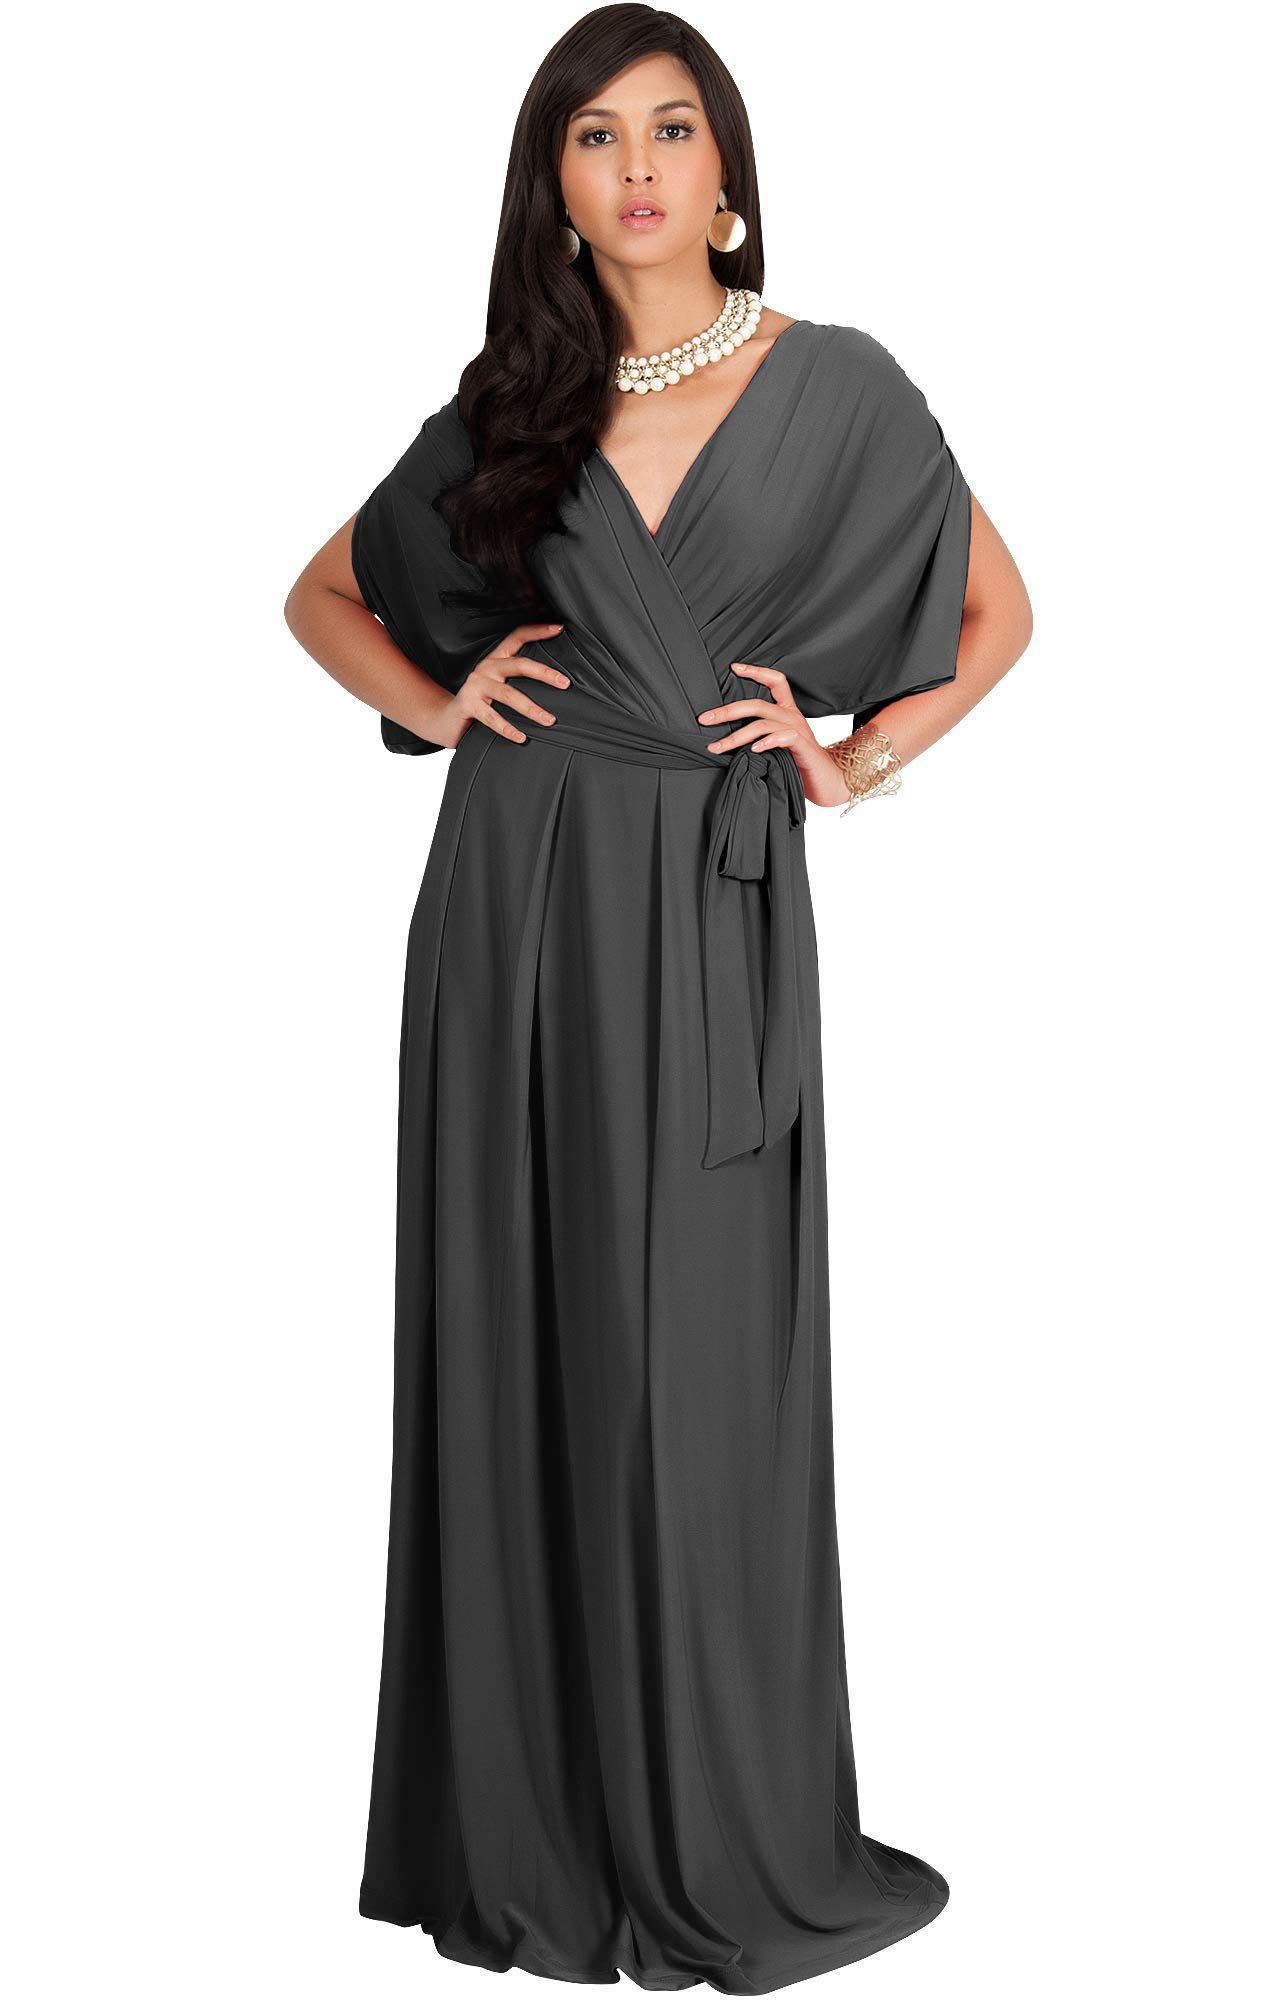 3962a2e7905 KOH KOH Petite Womens Long Semi-Formal Short Sleeve V-Neck Full Floor  Length V-Neck Flowy Cocktail Wedding Guest Party Bridesmaid Maxi Dress  Dresses Gown ...